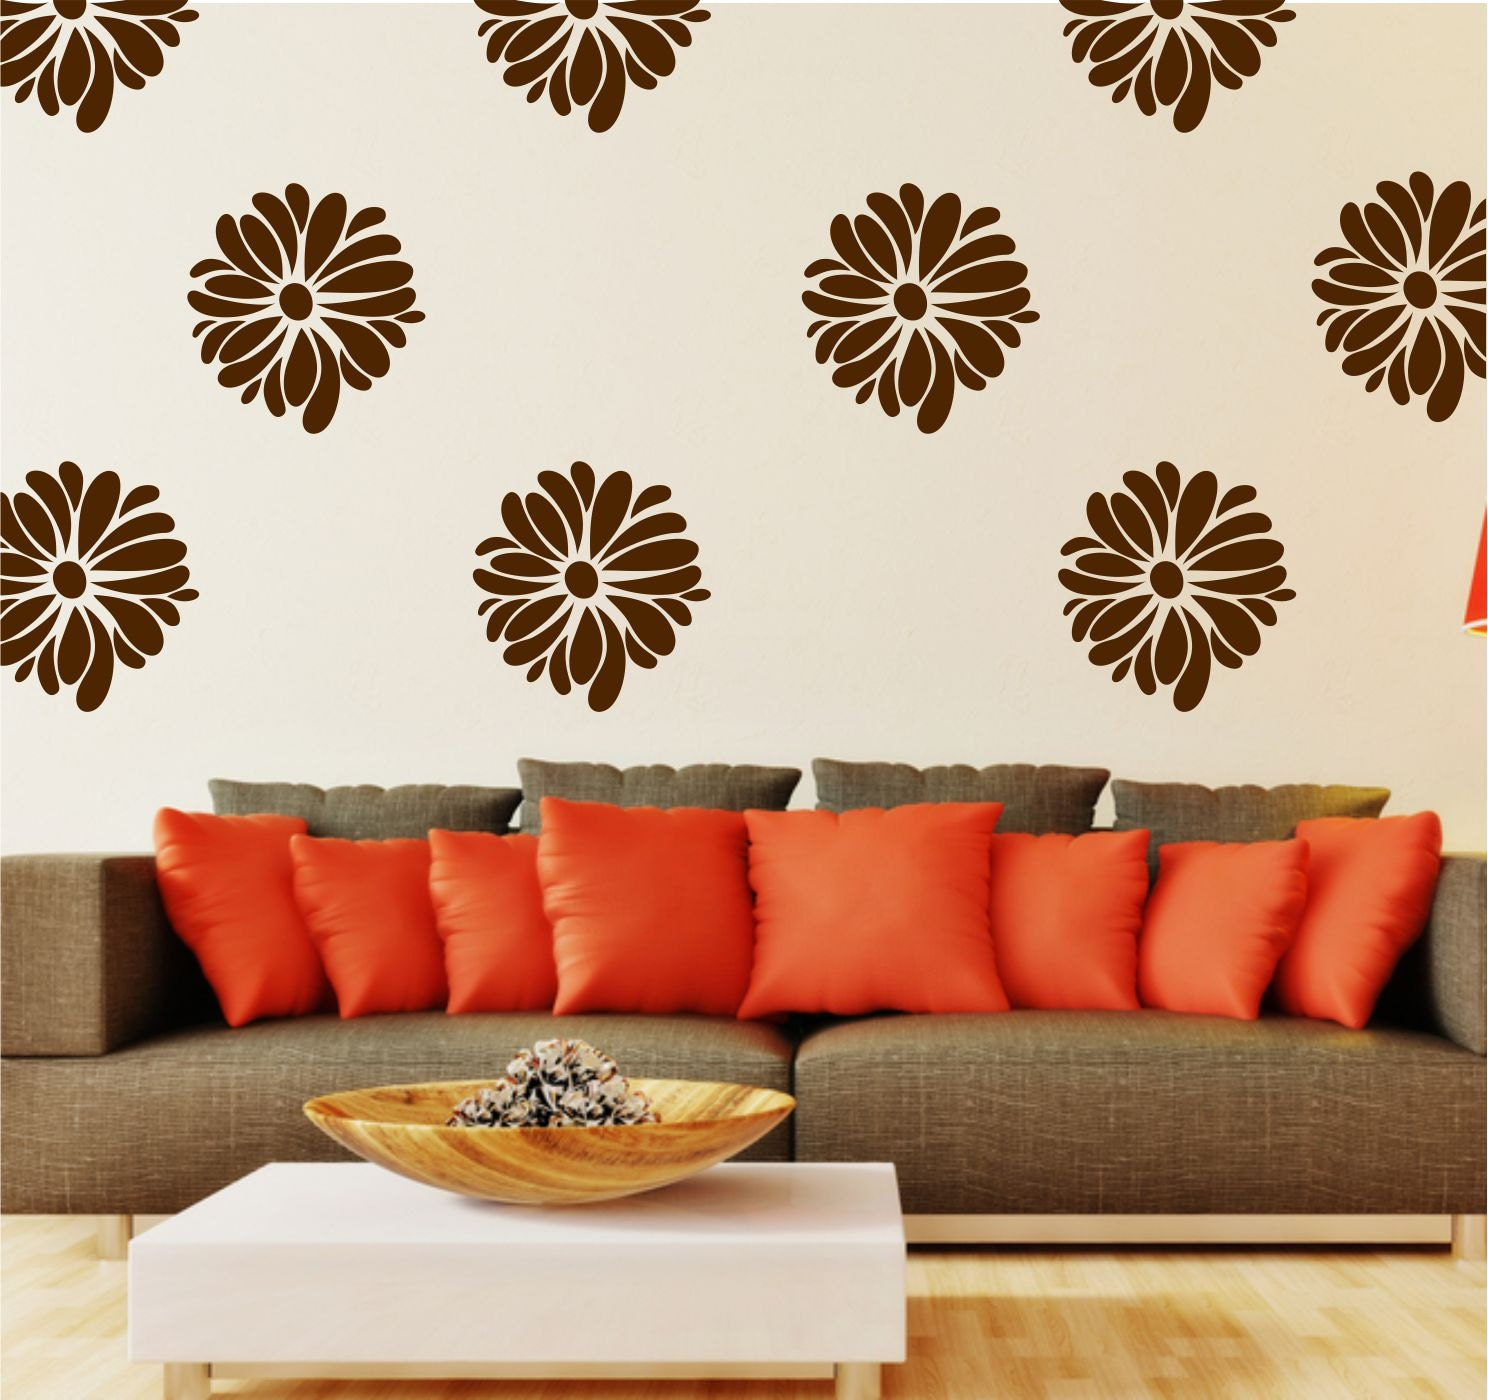 Flower Wall Decals Small Decal Pattern Flower Great for Bedroom or Living